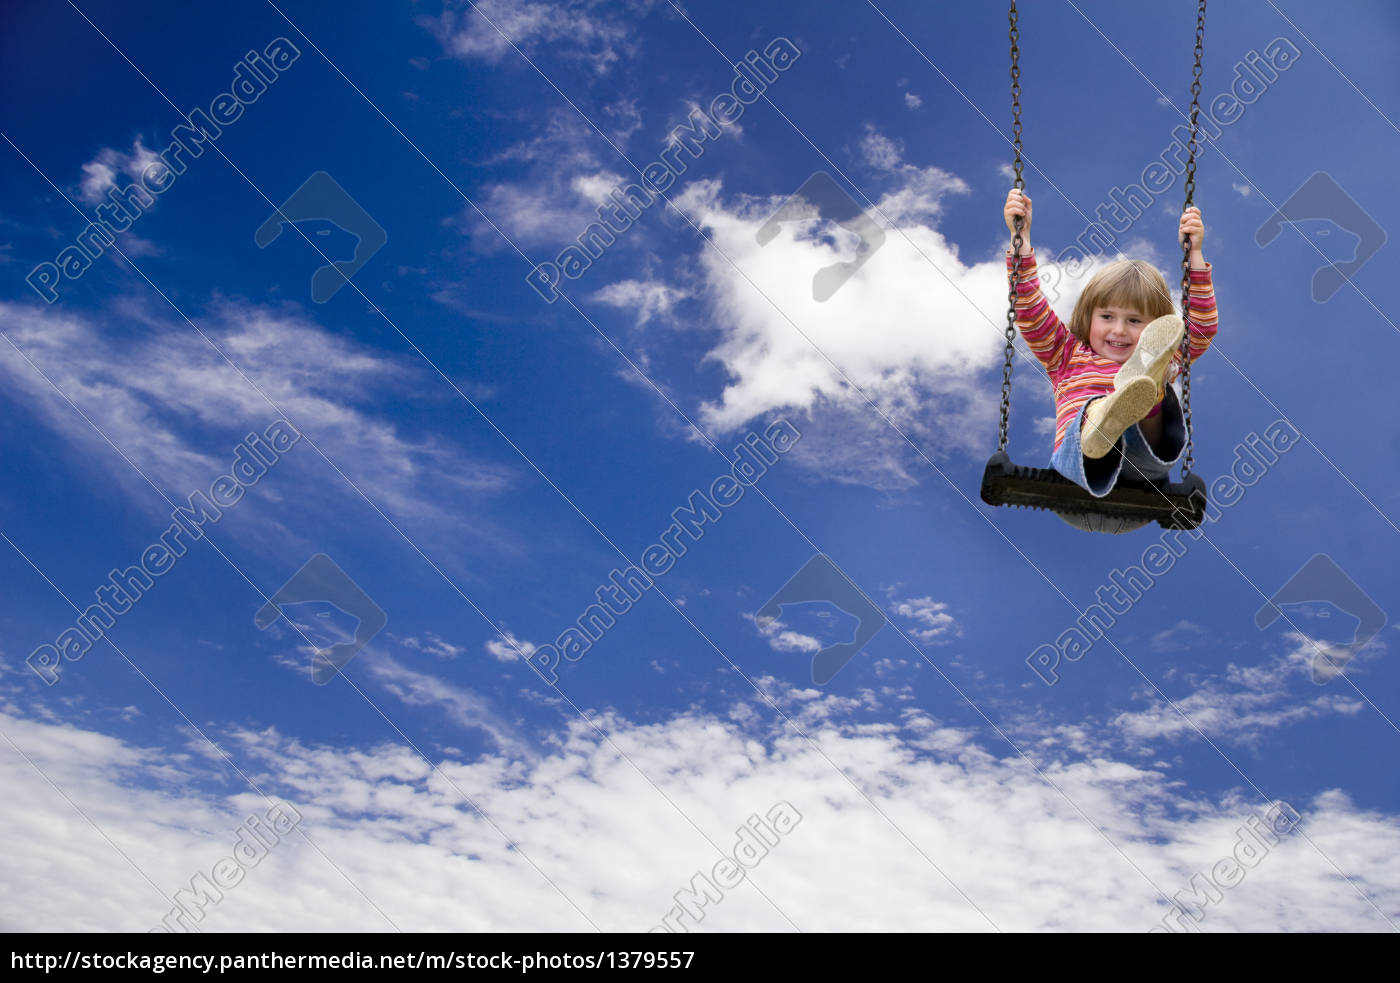 cloud, swing - 1379557